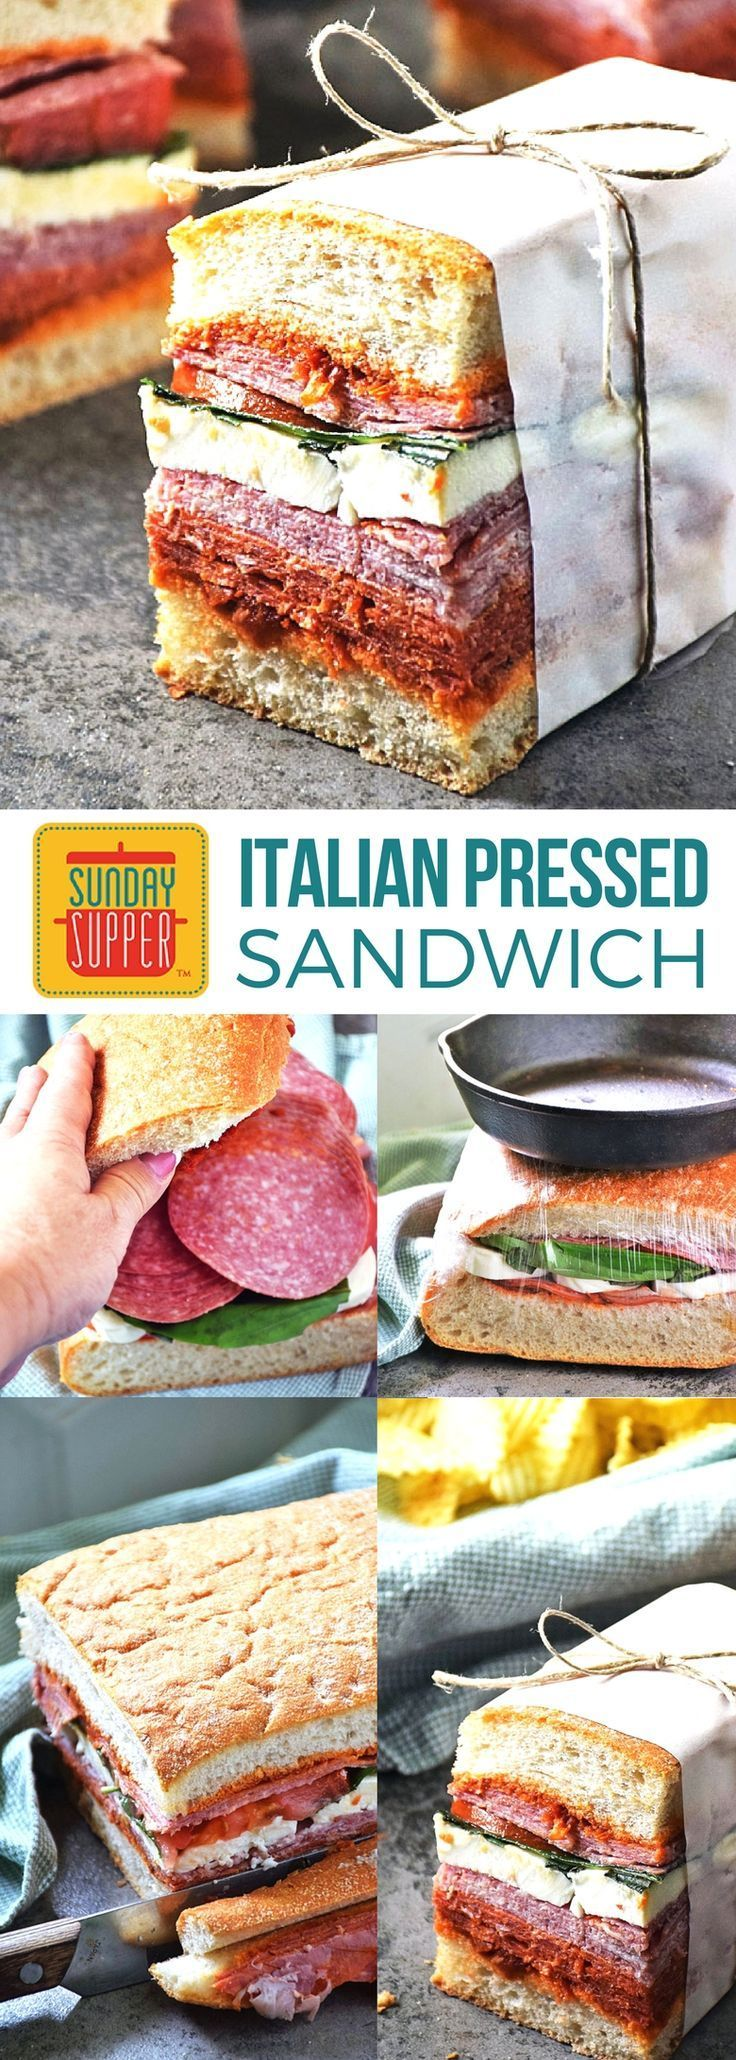 Our Italian Pressed Sandwich recipe is perfect for your busy lifestyle! A simple sandwich recipe sandwiched between hearty ciabatta bread and loaded with delicious Italian deli meats and cheese, this pressed sandwich also travels well, making it the perfe